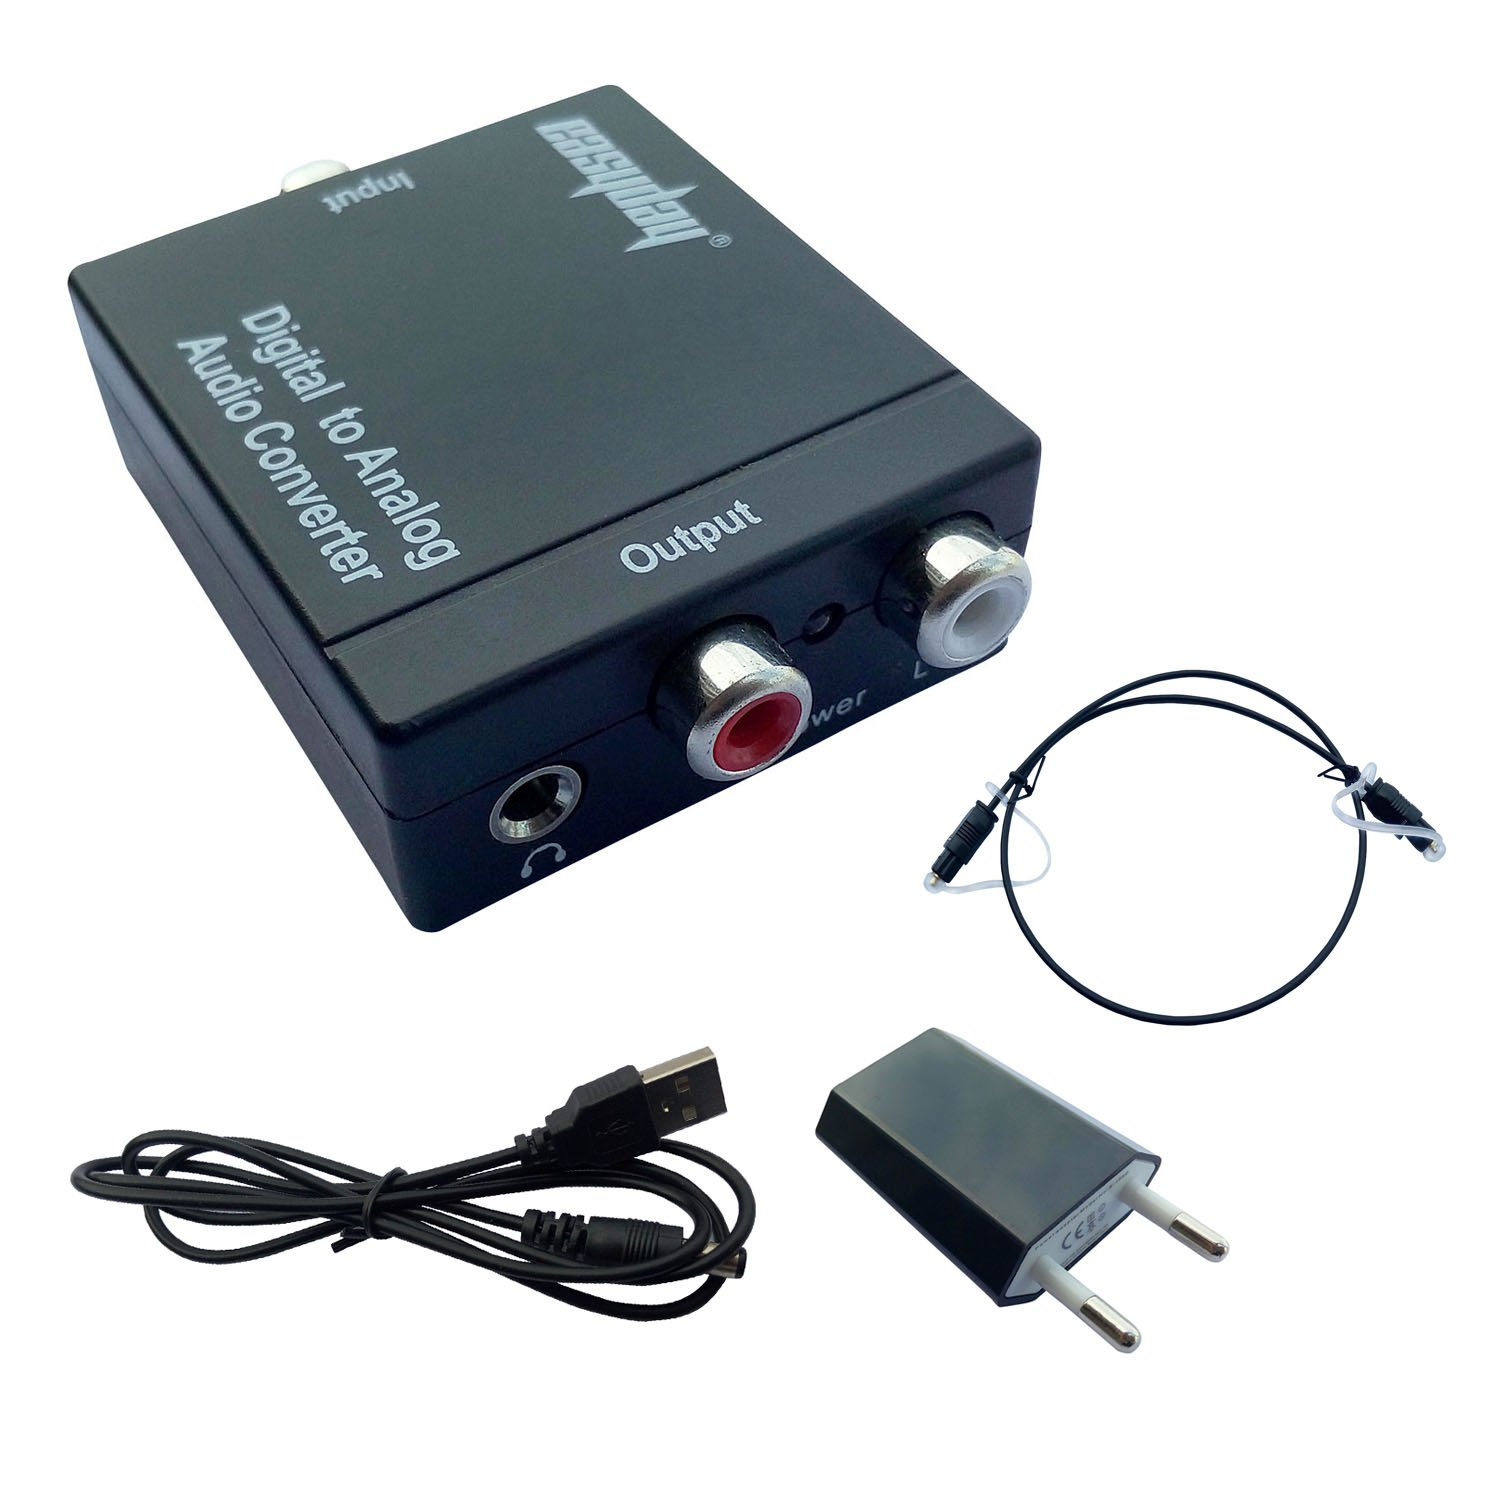 Easyday 3.5MM Digital Optical Coaxial Toslink to Analog RCA ...